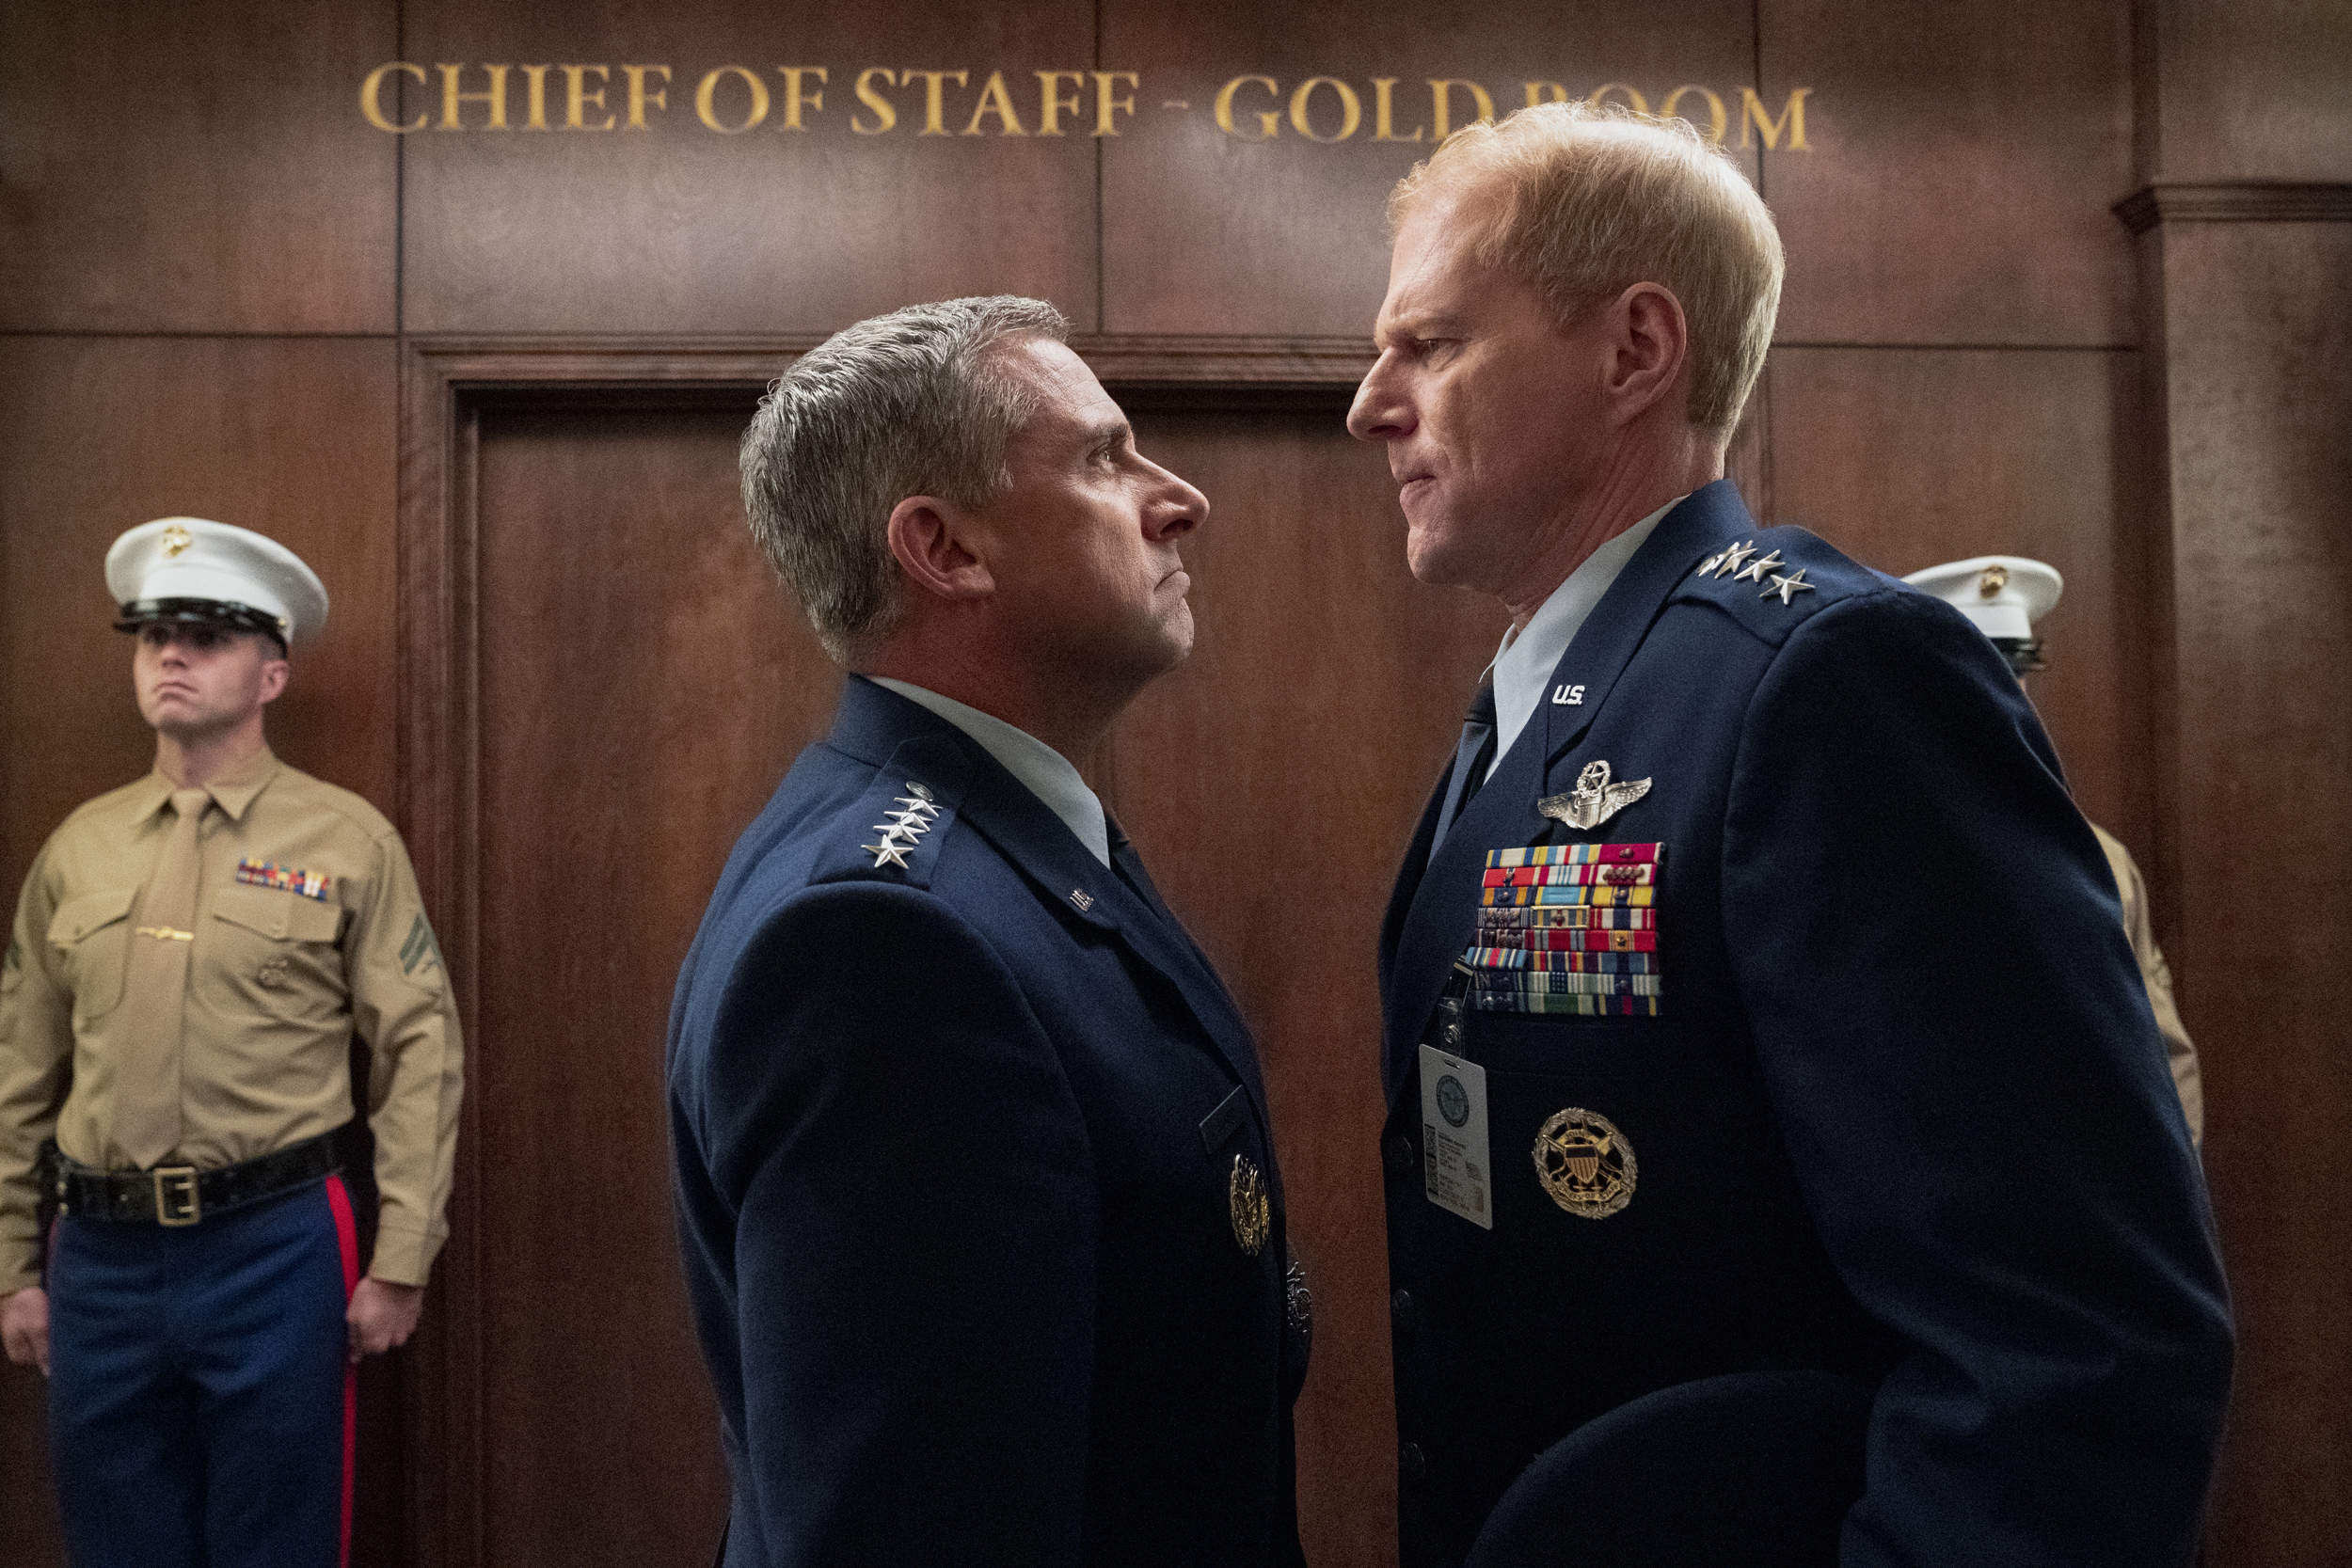 Netflix comedy 'Space Force' shows real military branch's struggle ...